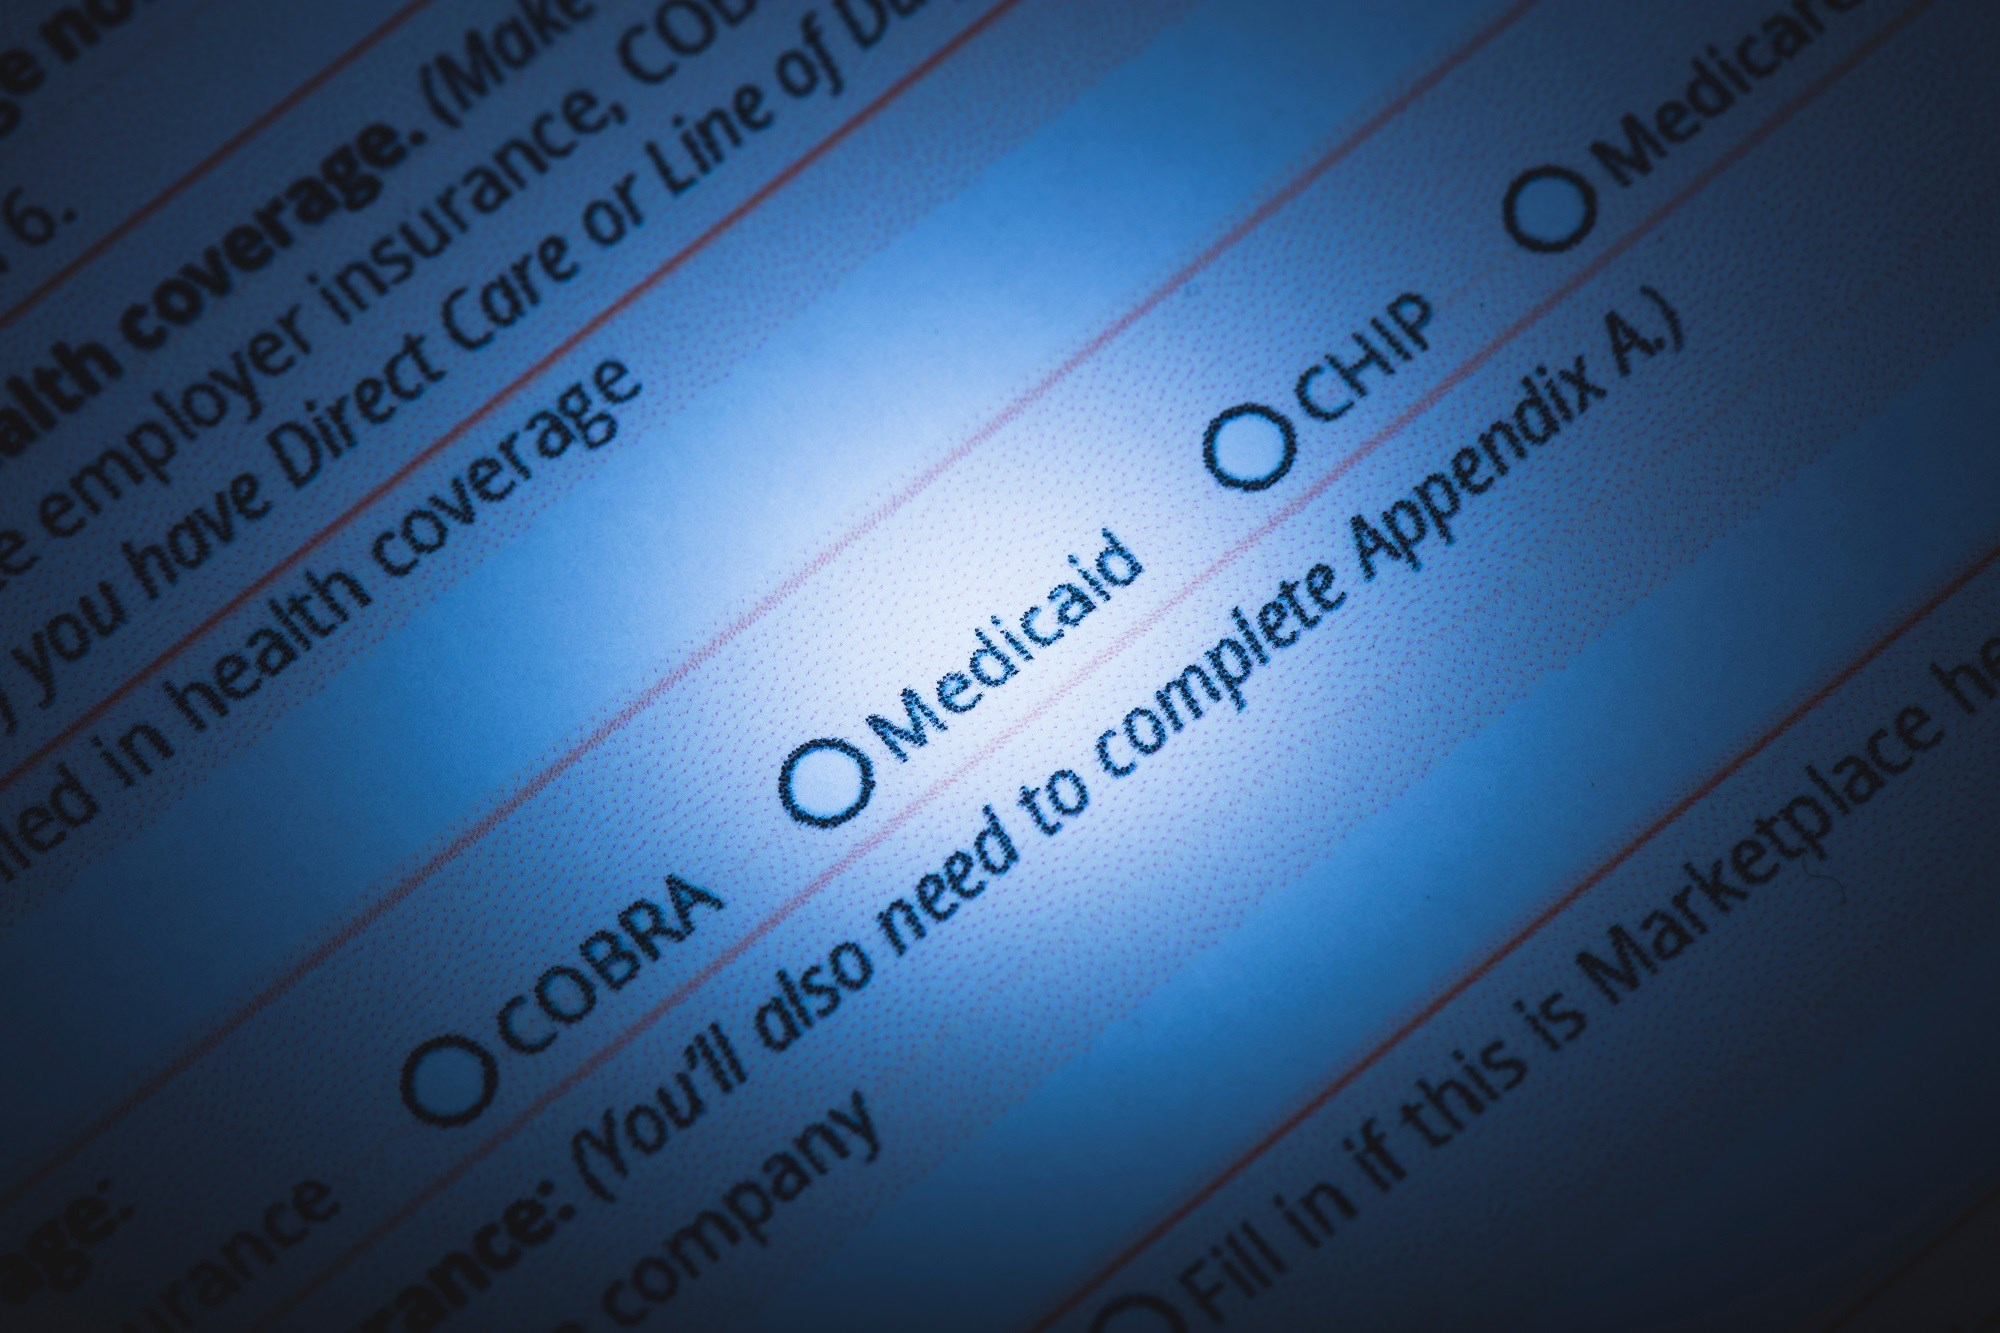 The policy came in response to recently approved state Medicaid waivers that block patients from Medicaid for up to 6 months for not meeting deadlines or paperwork requirements.